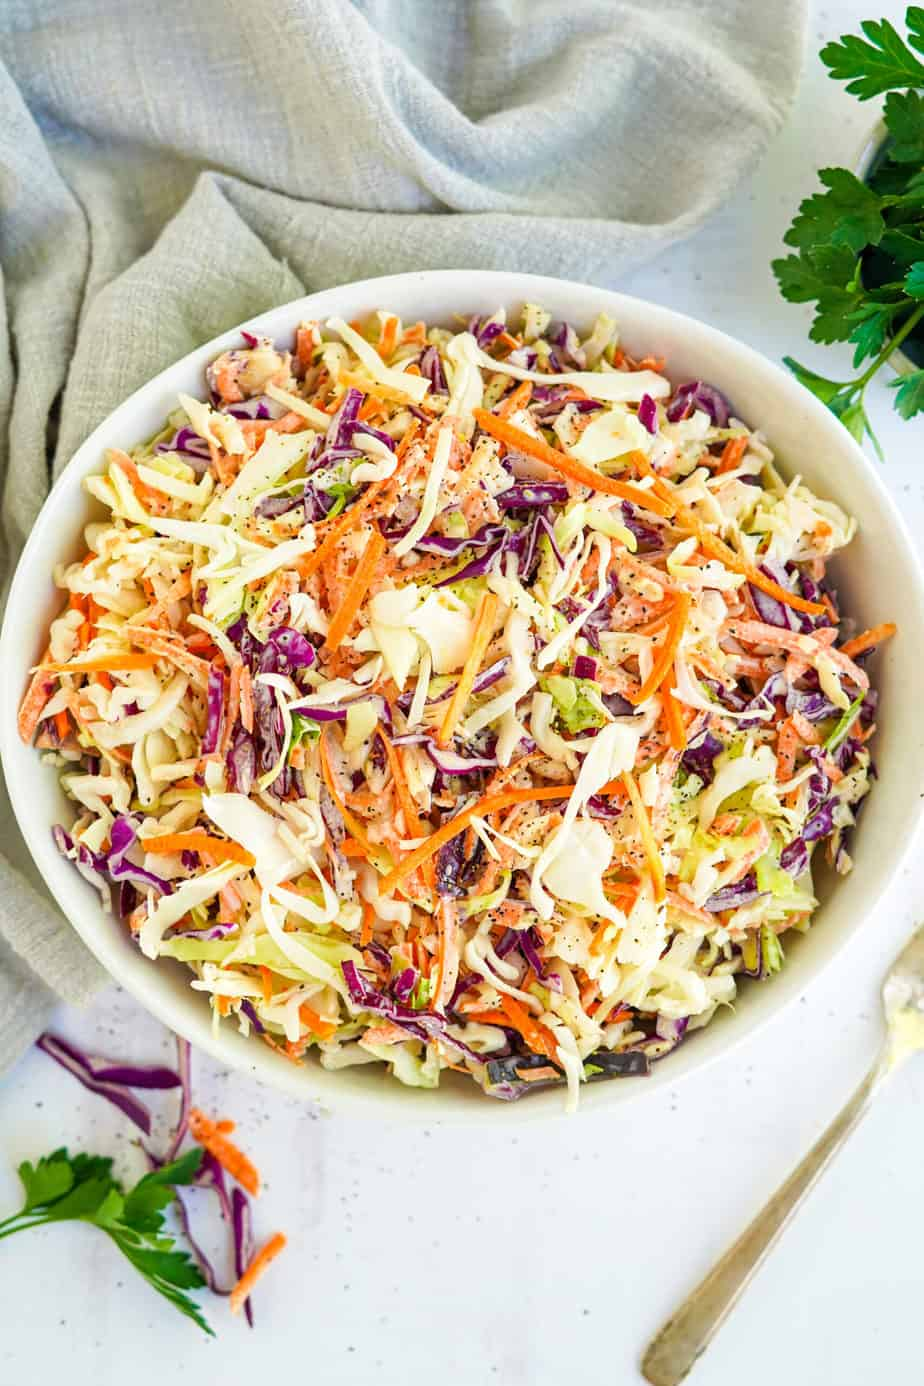 Coleslaw in a serving bowl from overhead